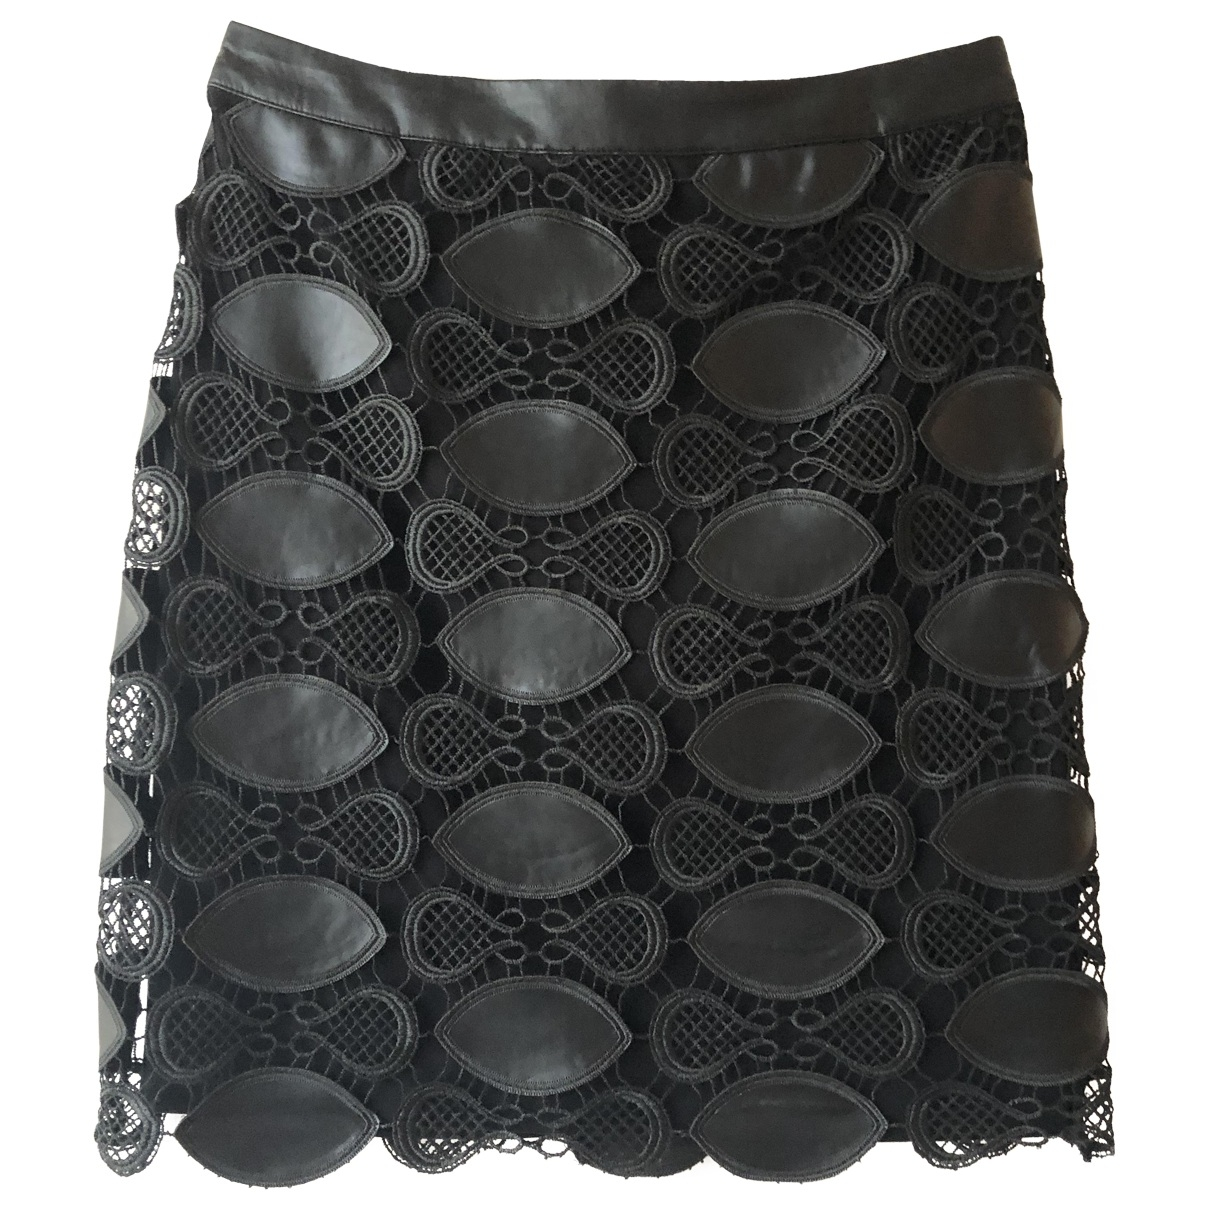 Max & Co \N Black skirt for Women 38 IT